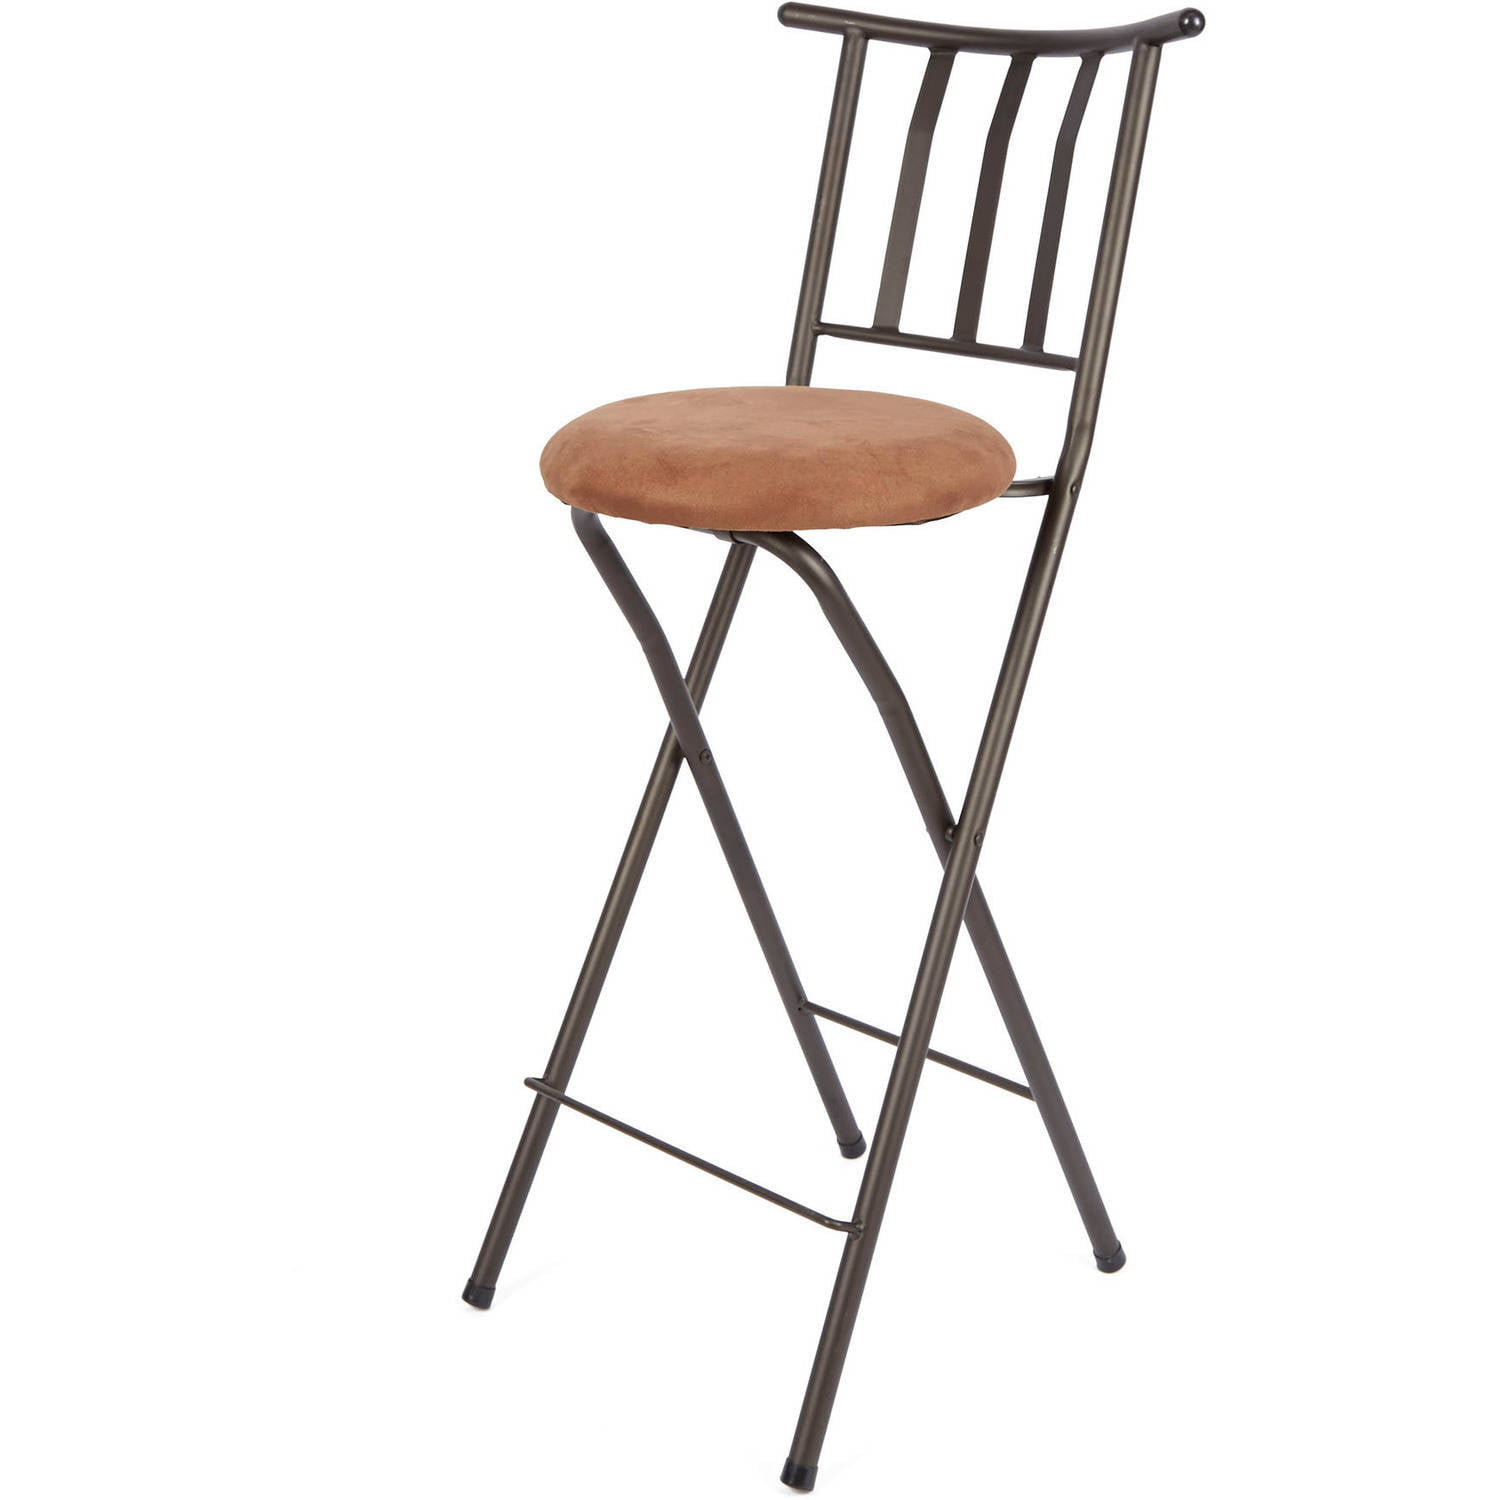 Amazing Mainstays Slat Back Folding 30 Bronze Bar Stool Multiple Colors Walmart Com Dailytribune Chair Design For Home Dailytribuneorg